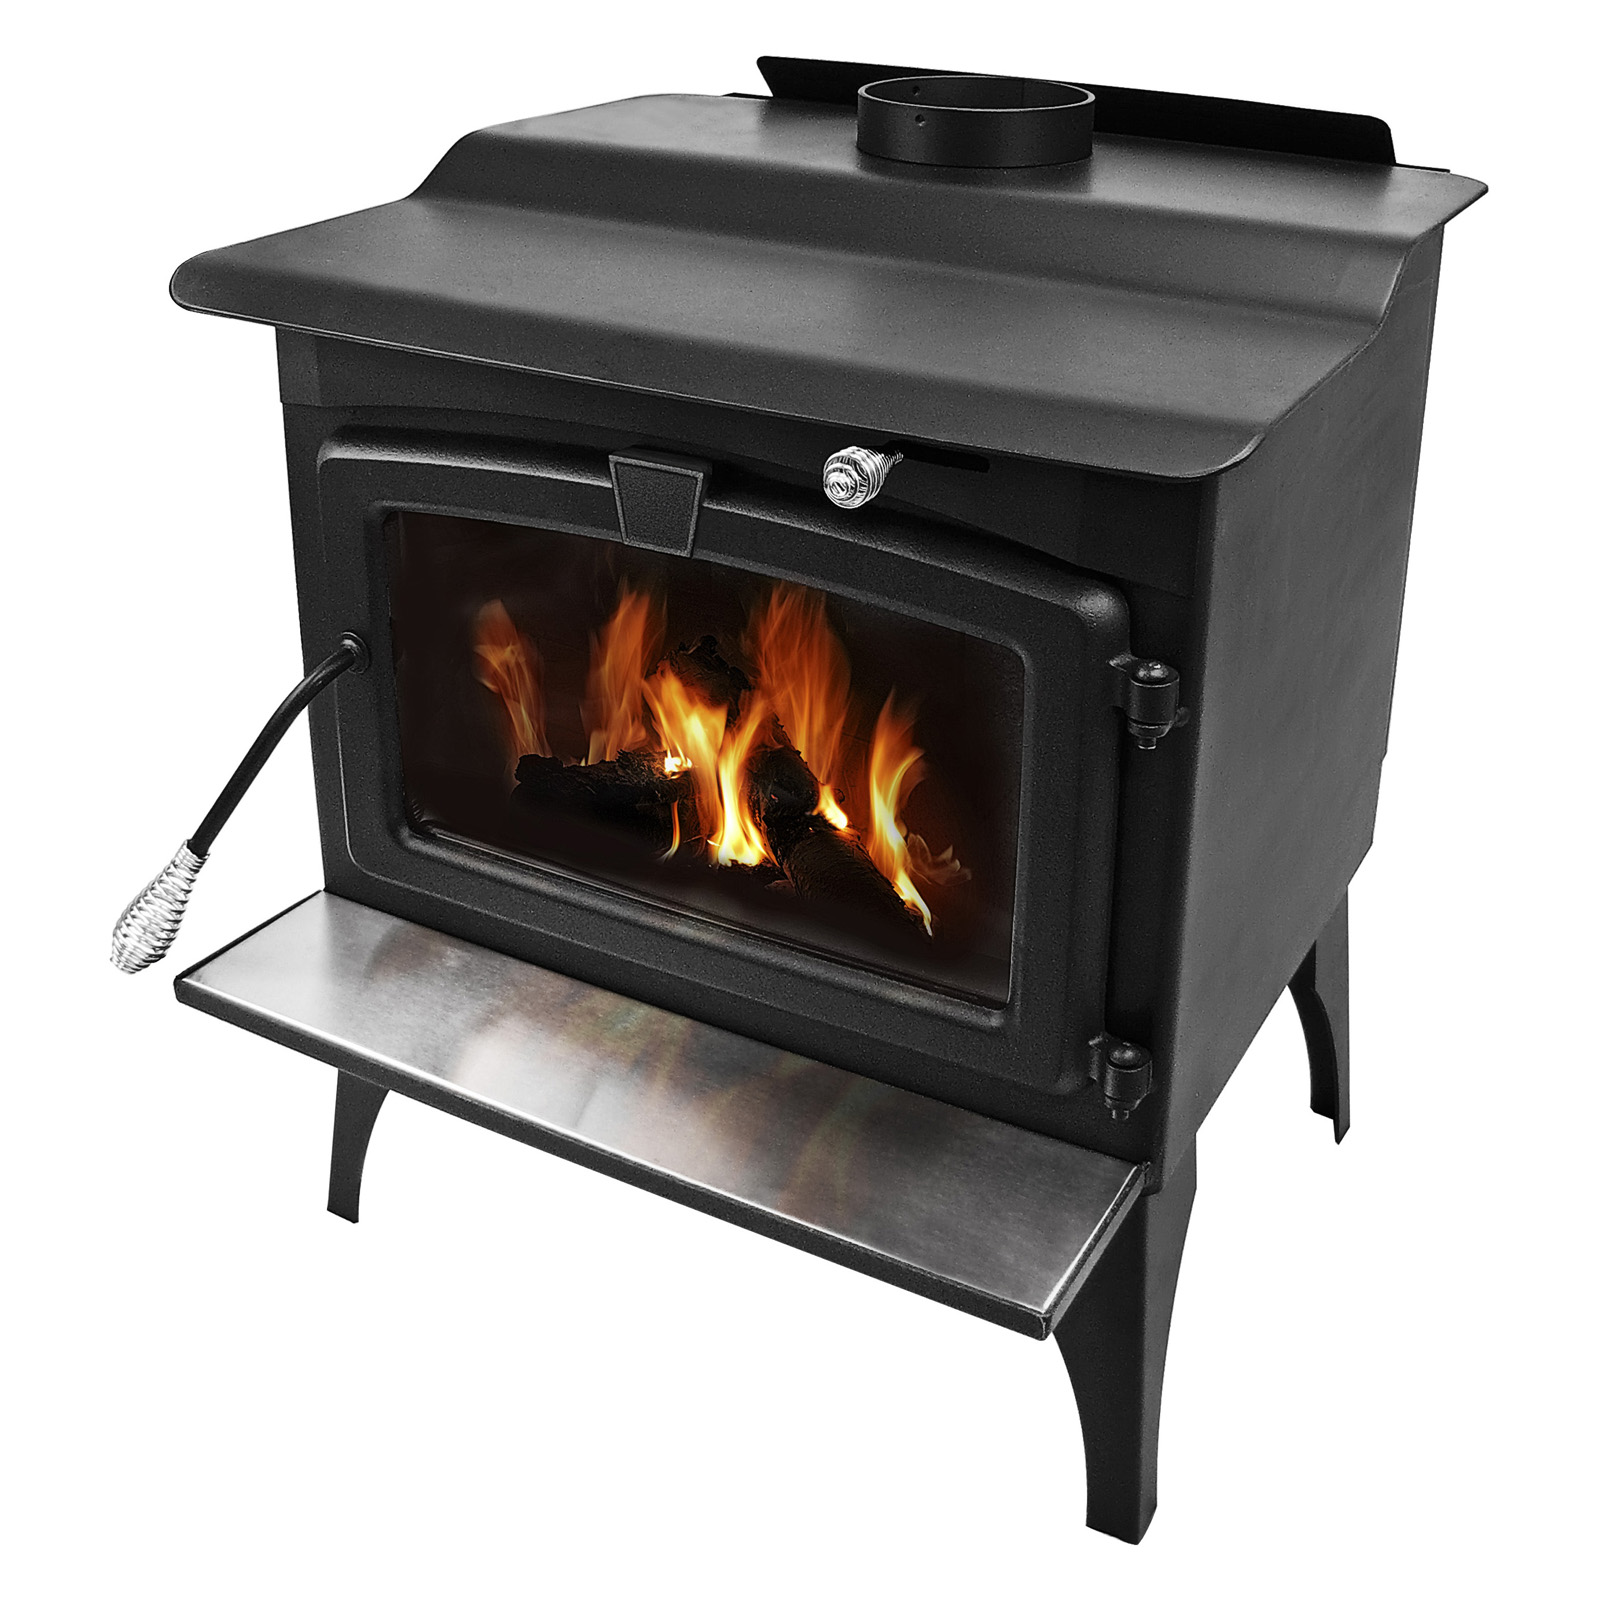 Pleasant Hearth Medium Wood Burning Stove with Blower - Black ...